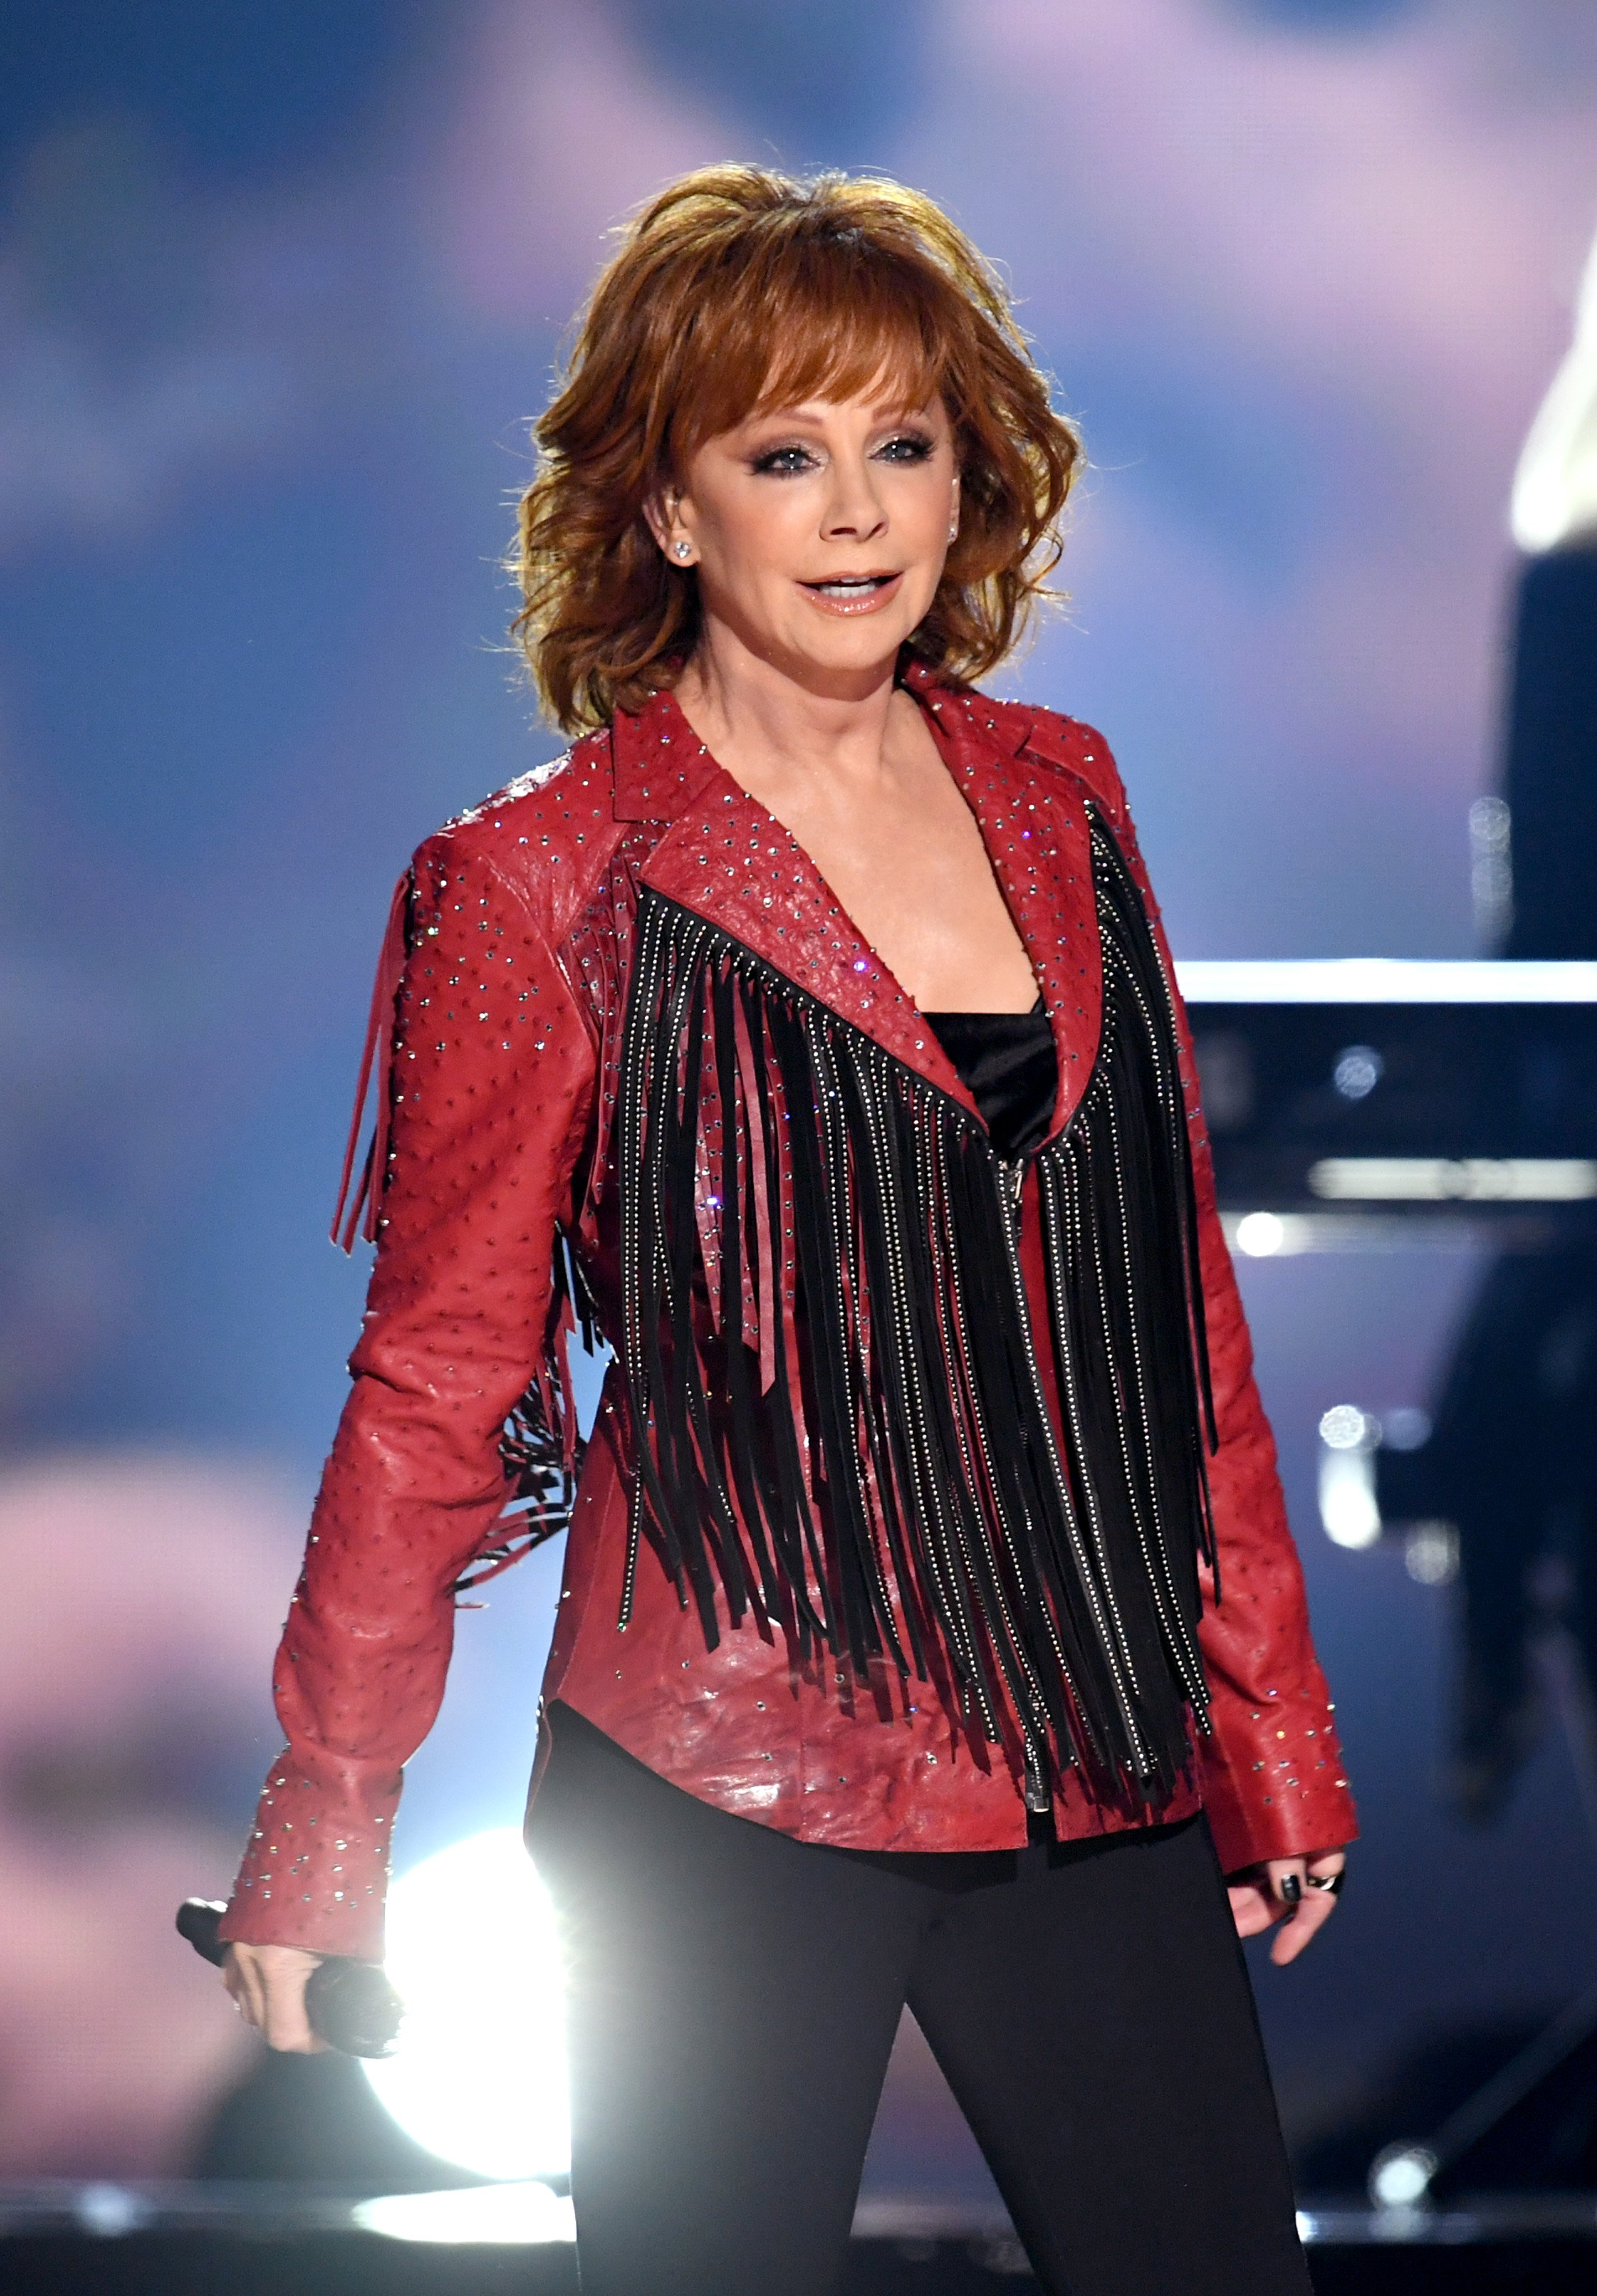 Reba McEntire performs at the 54th Academy of Country Music Awards in Las Vegas, Nevada on April 7, 2019 | Photo: Getty Images